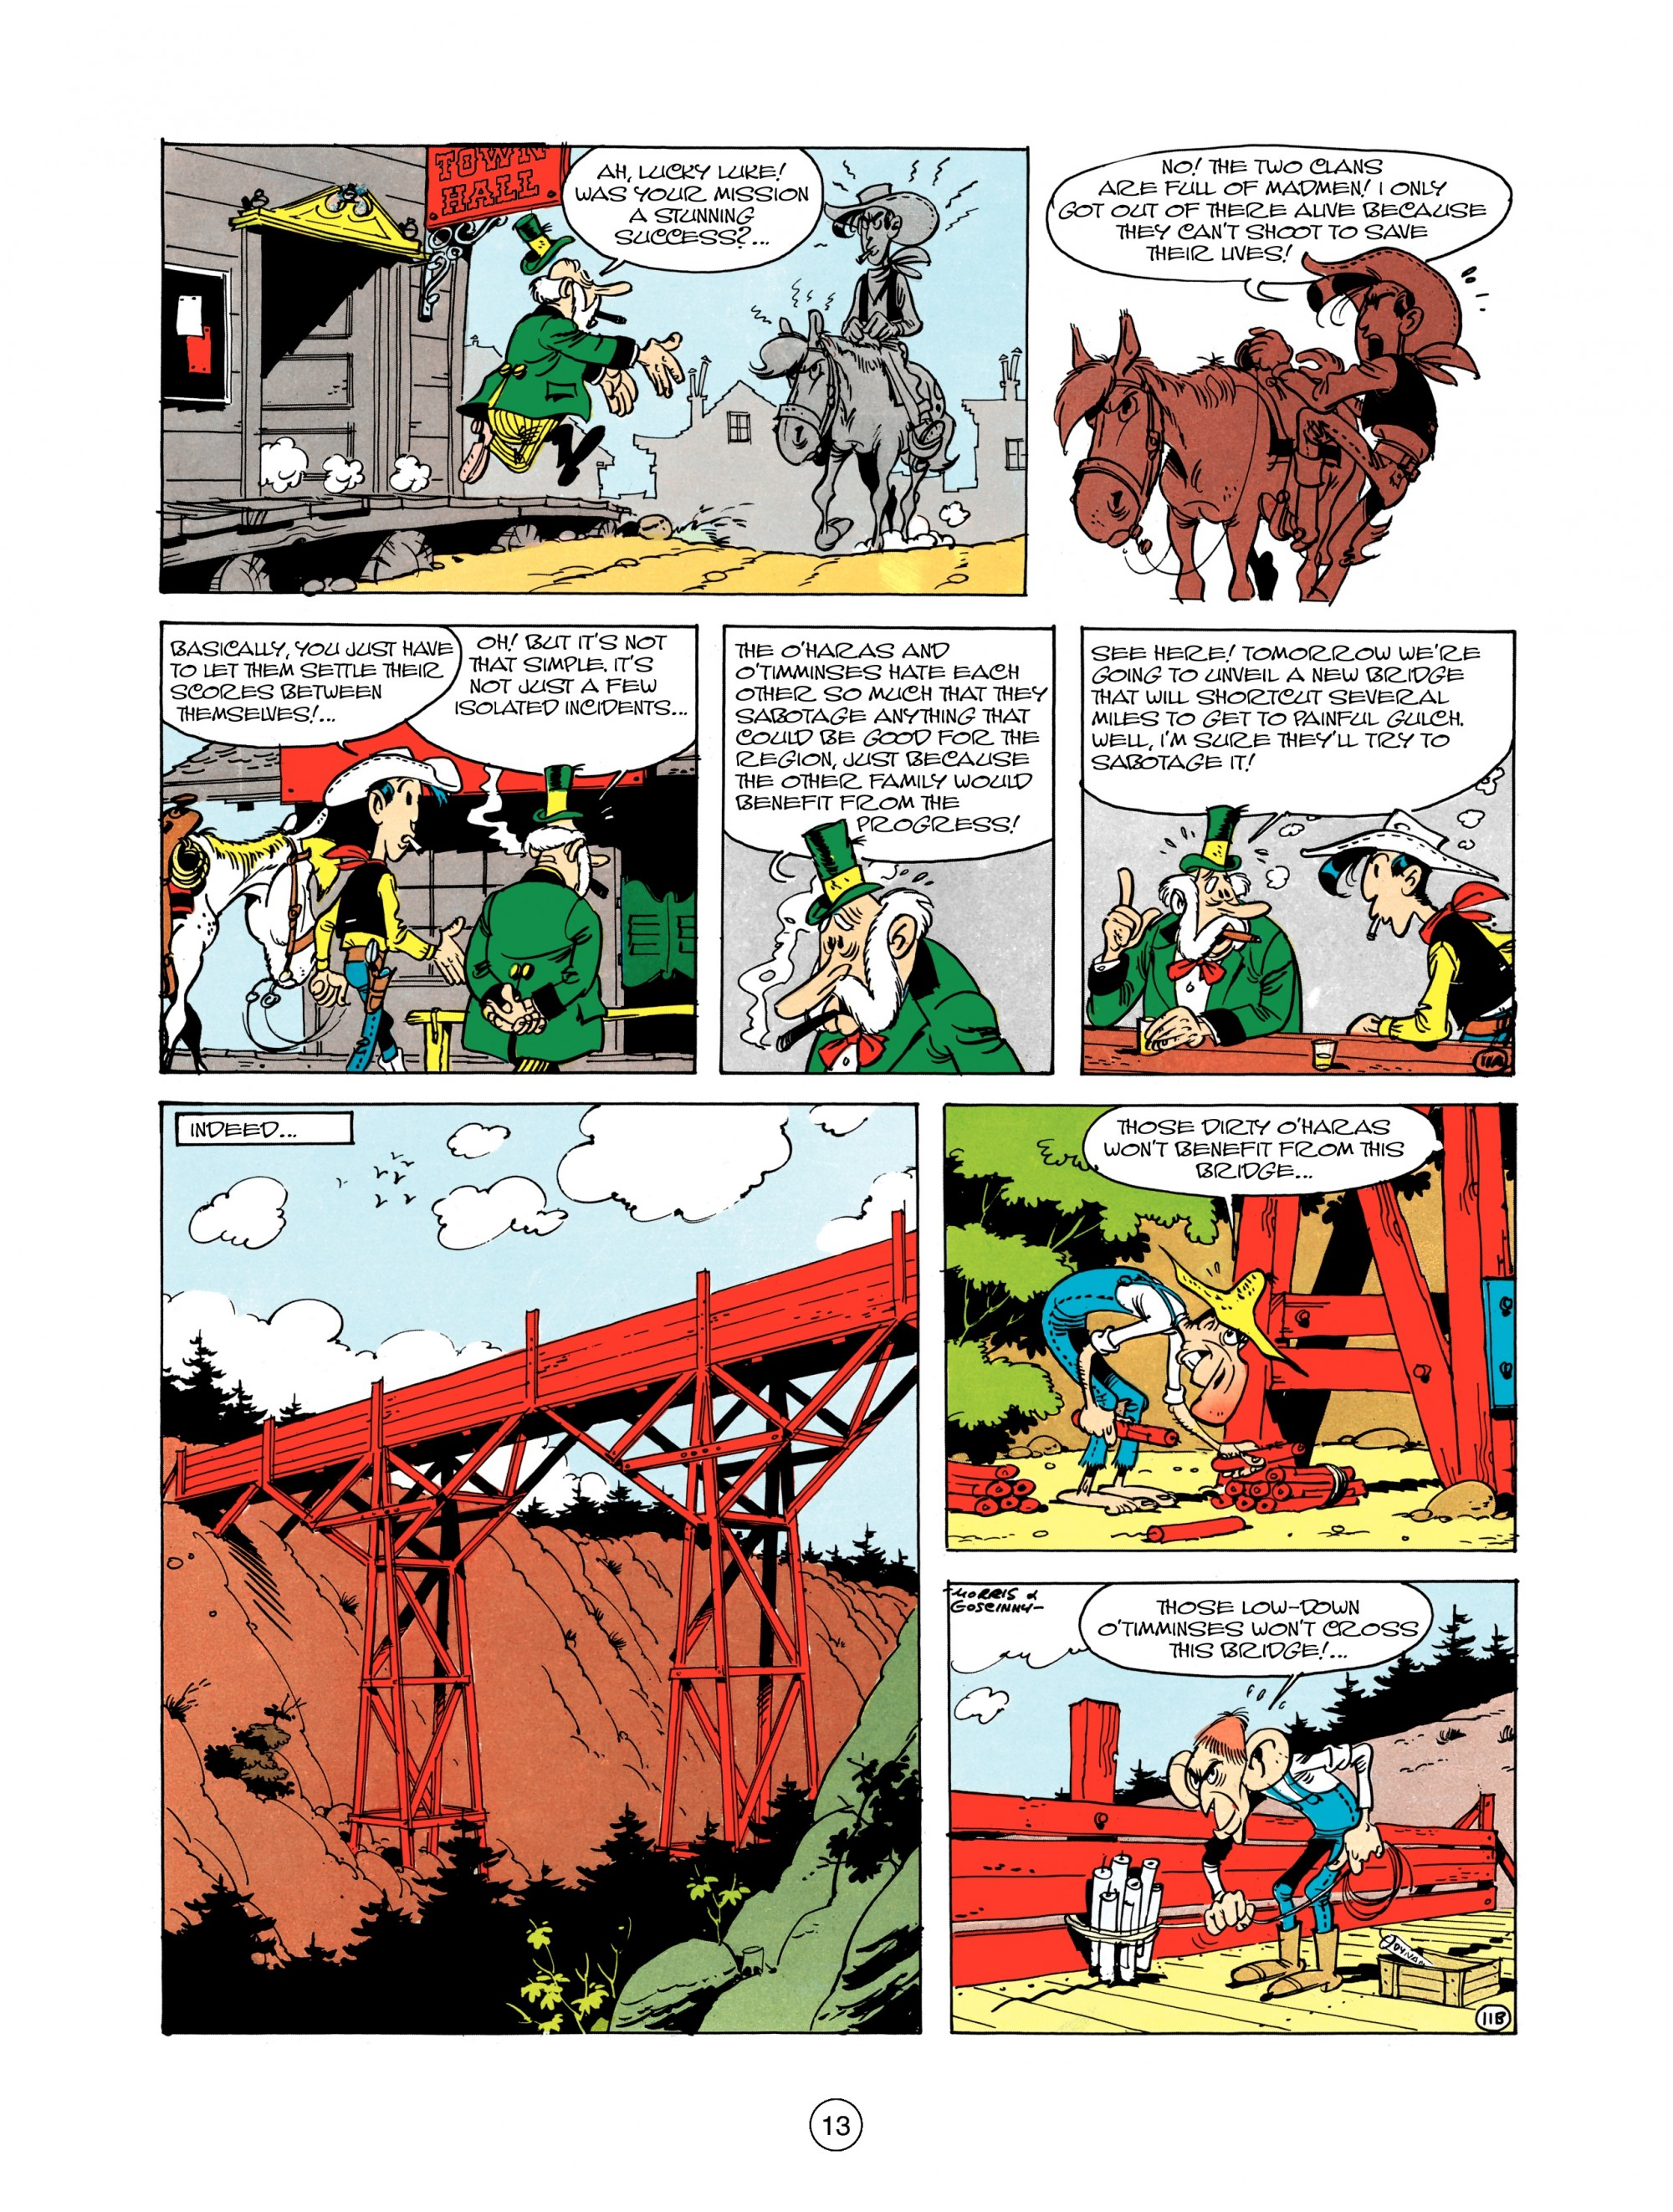 Read online A Lucky Luke Adventure comic -  Issue #12 - 13